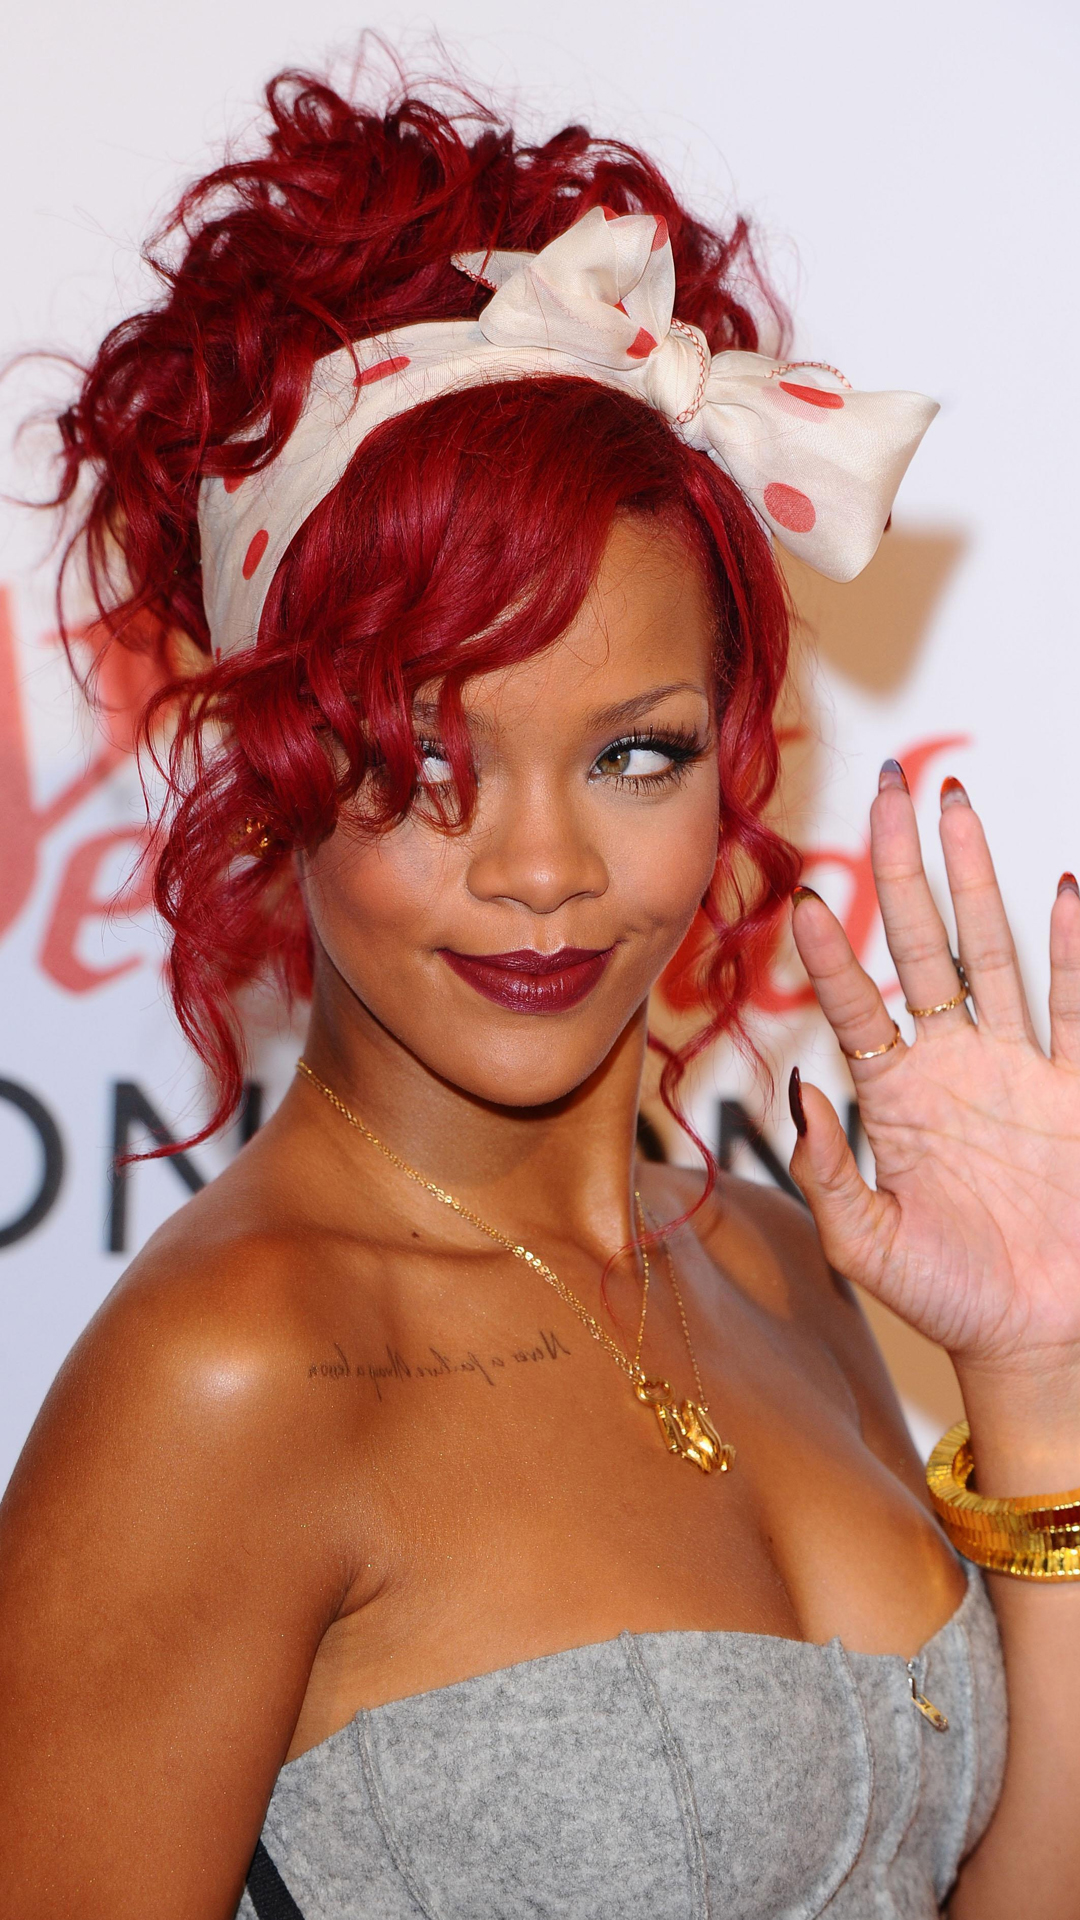 Easy A Girl Wallpapers Rihanna Htc One 1080x1920 Wallpaper Best Htc One Wallpapers